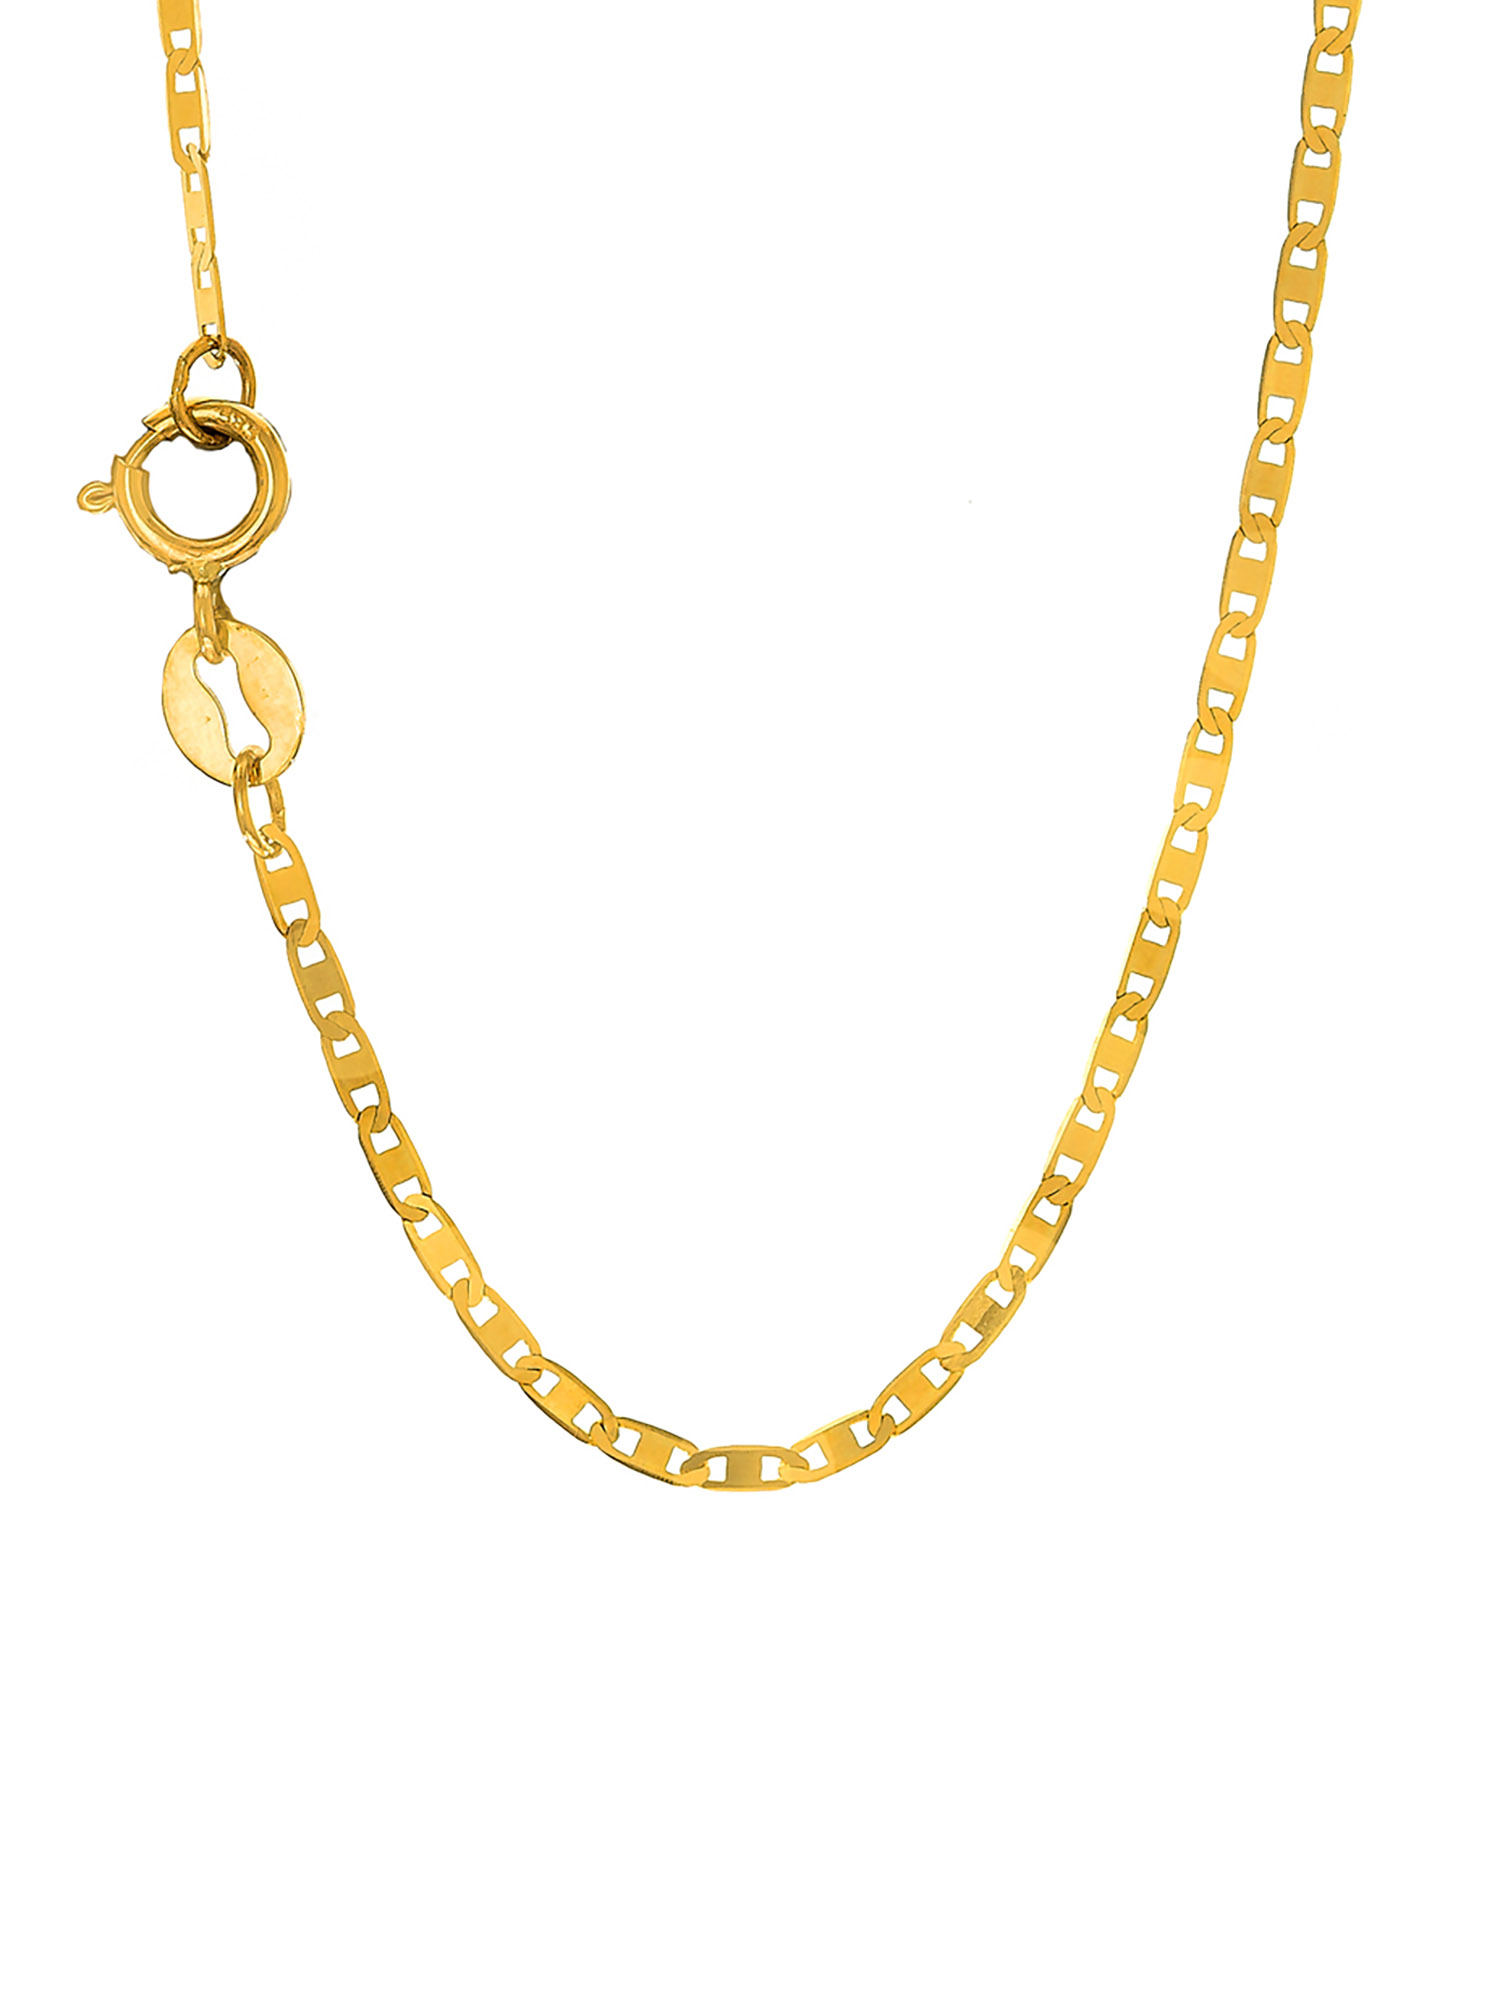 14k Solid Yellow Gold 1.2mm Mariner Chain Necklace Clasp - 16 18 20